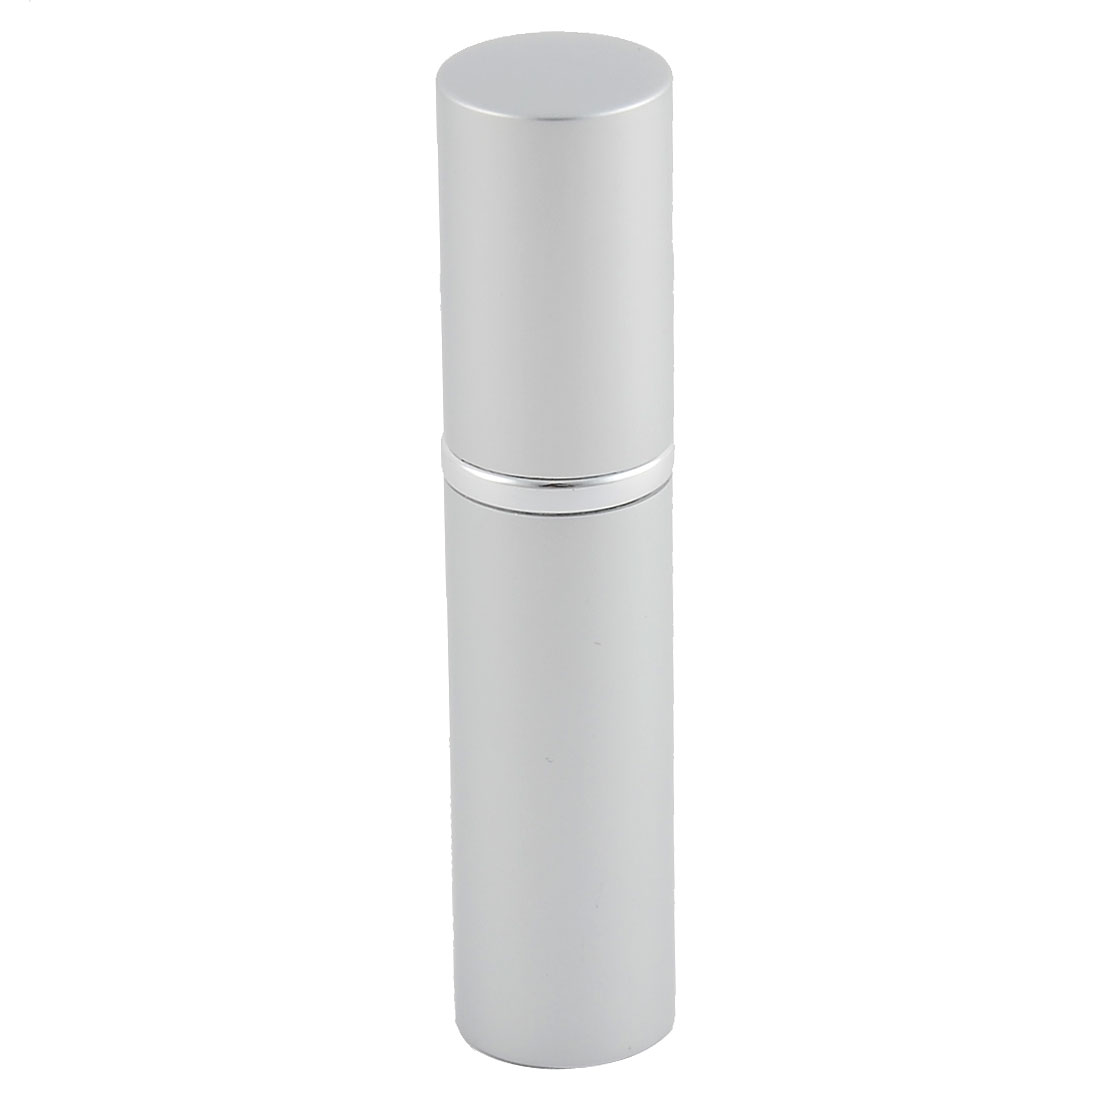 5mL Travel Portable Lipstick Shape Refillable Perfume Spray Bottle Silver Tone